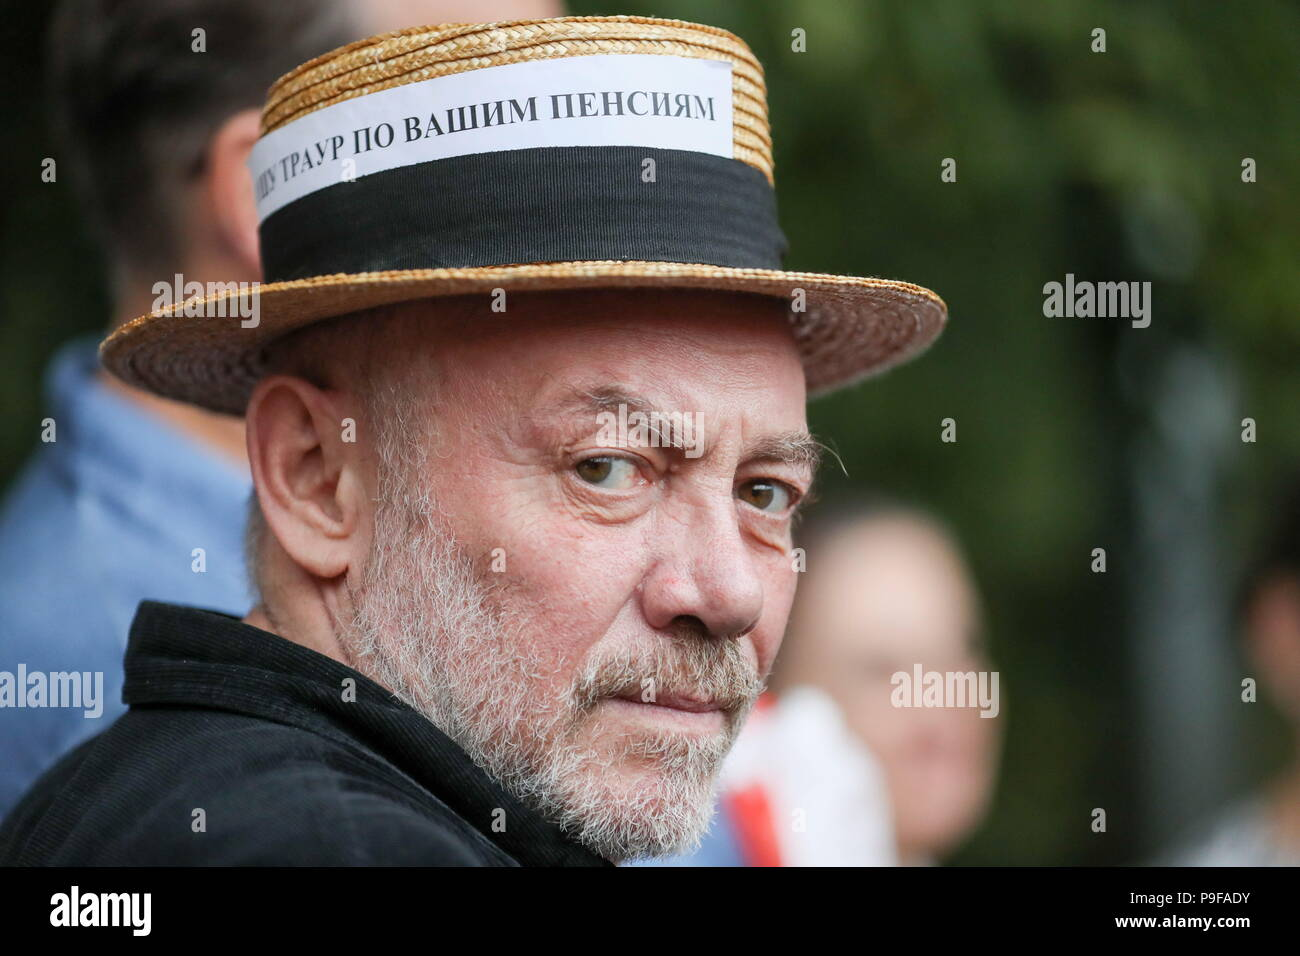 Moscow, Russia. 18th July, 2018. MOSCOW, RUSSIA - JULY 18, 2018: An elderly man takes part in Moscow's Sokolniki Hyde Park rally against a Russian government proposal to raise the retirement age from 60 to 65 for men, and from 55 to 63 for women within the next two decades. Sergei Savostyanov/TASS Credit: ITAR-TASS News Agency/Alamy Live News - Stock Image